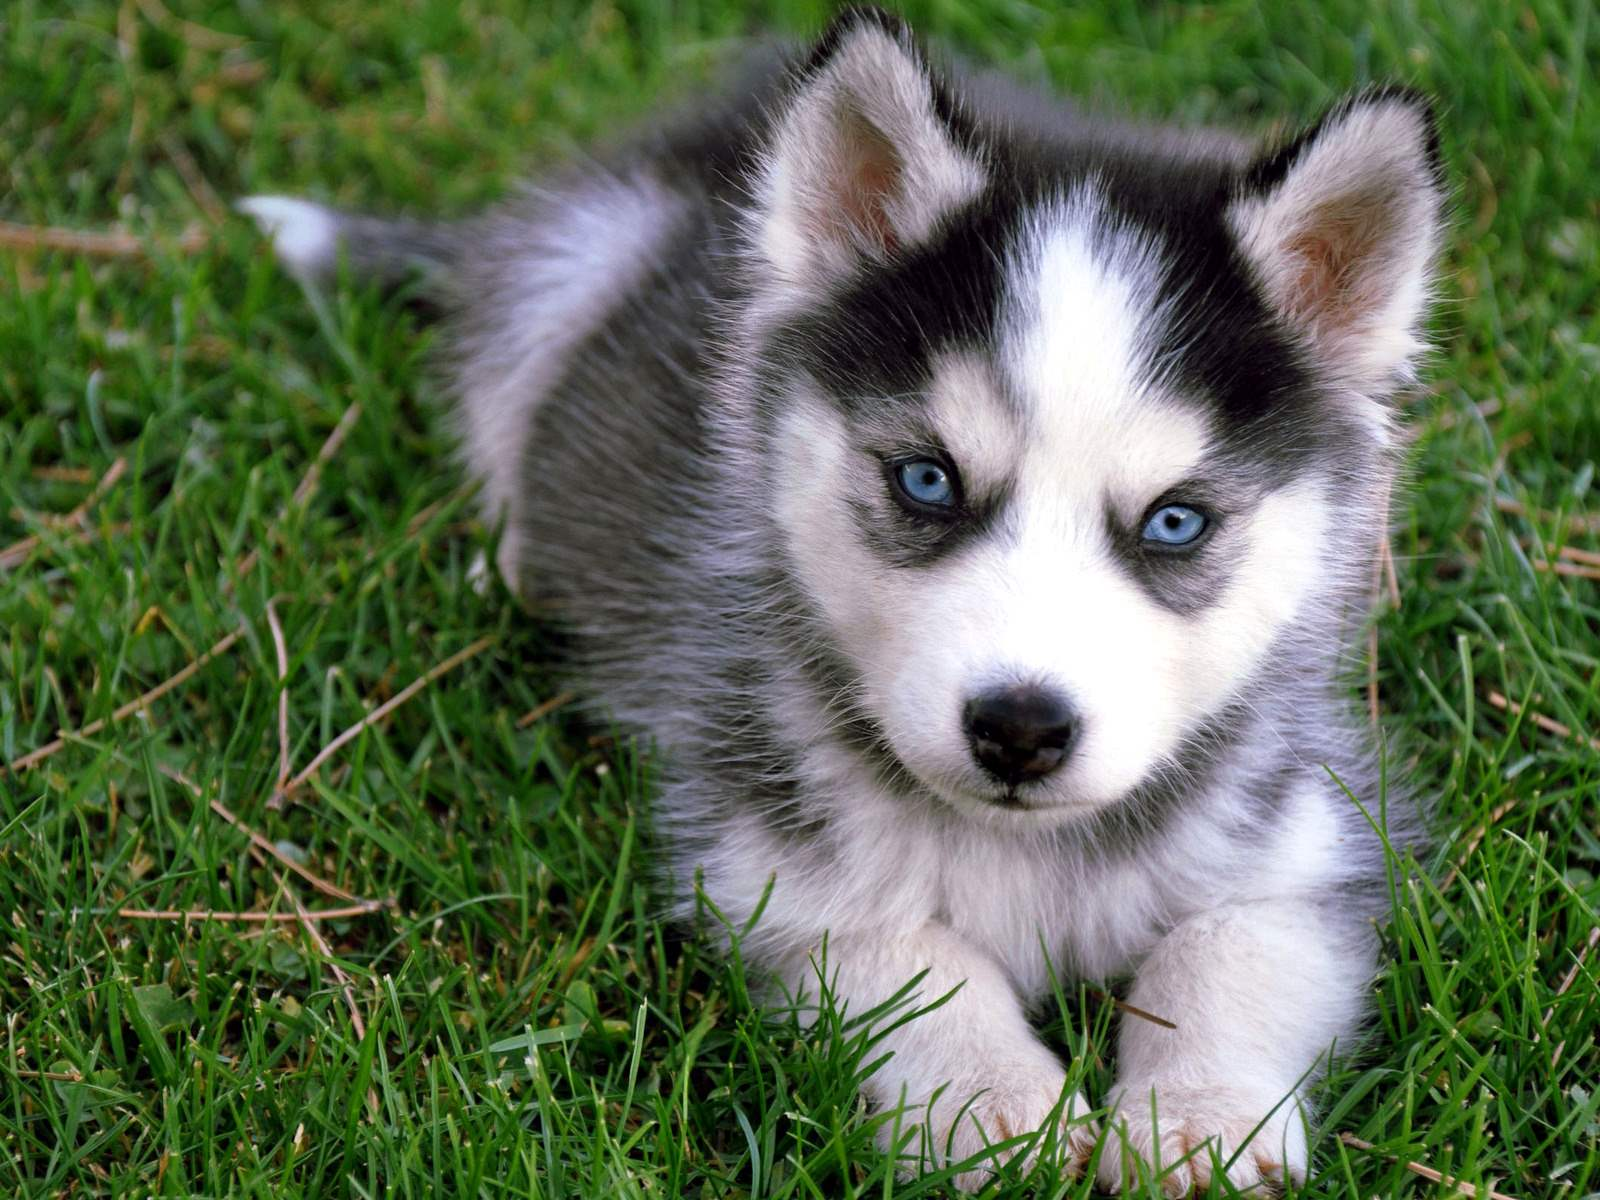 You can download and save this excellent/nice Puppies Wallpapers : Cute Siberian Husky Puppy Sitting On Grass Puppies Wallpaper to your computer, pc, ...